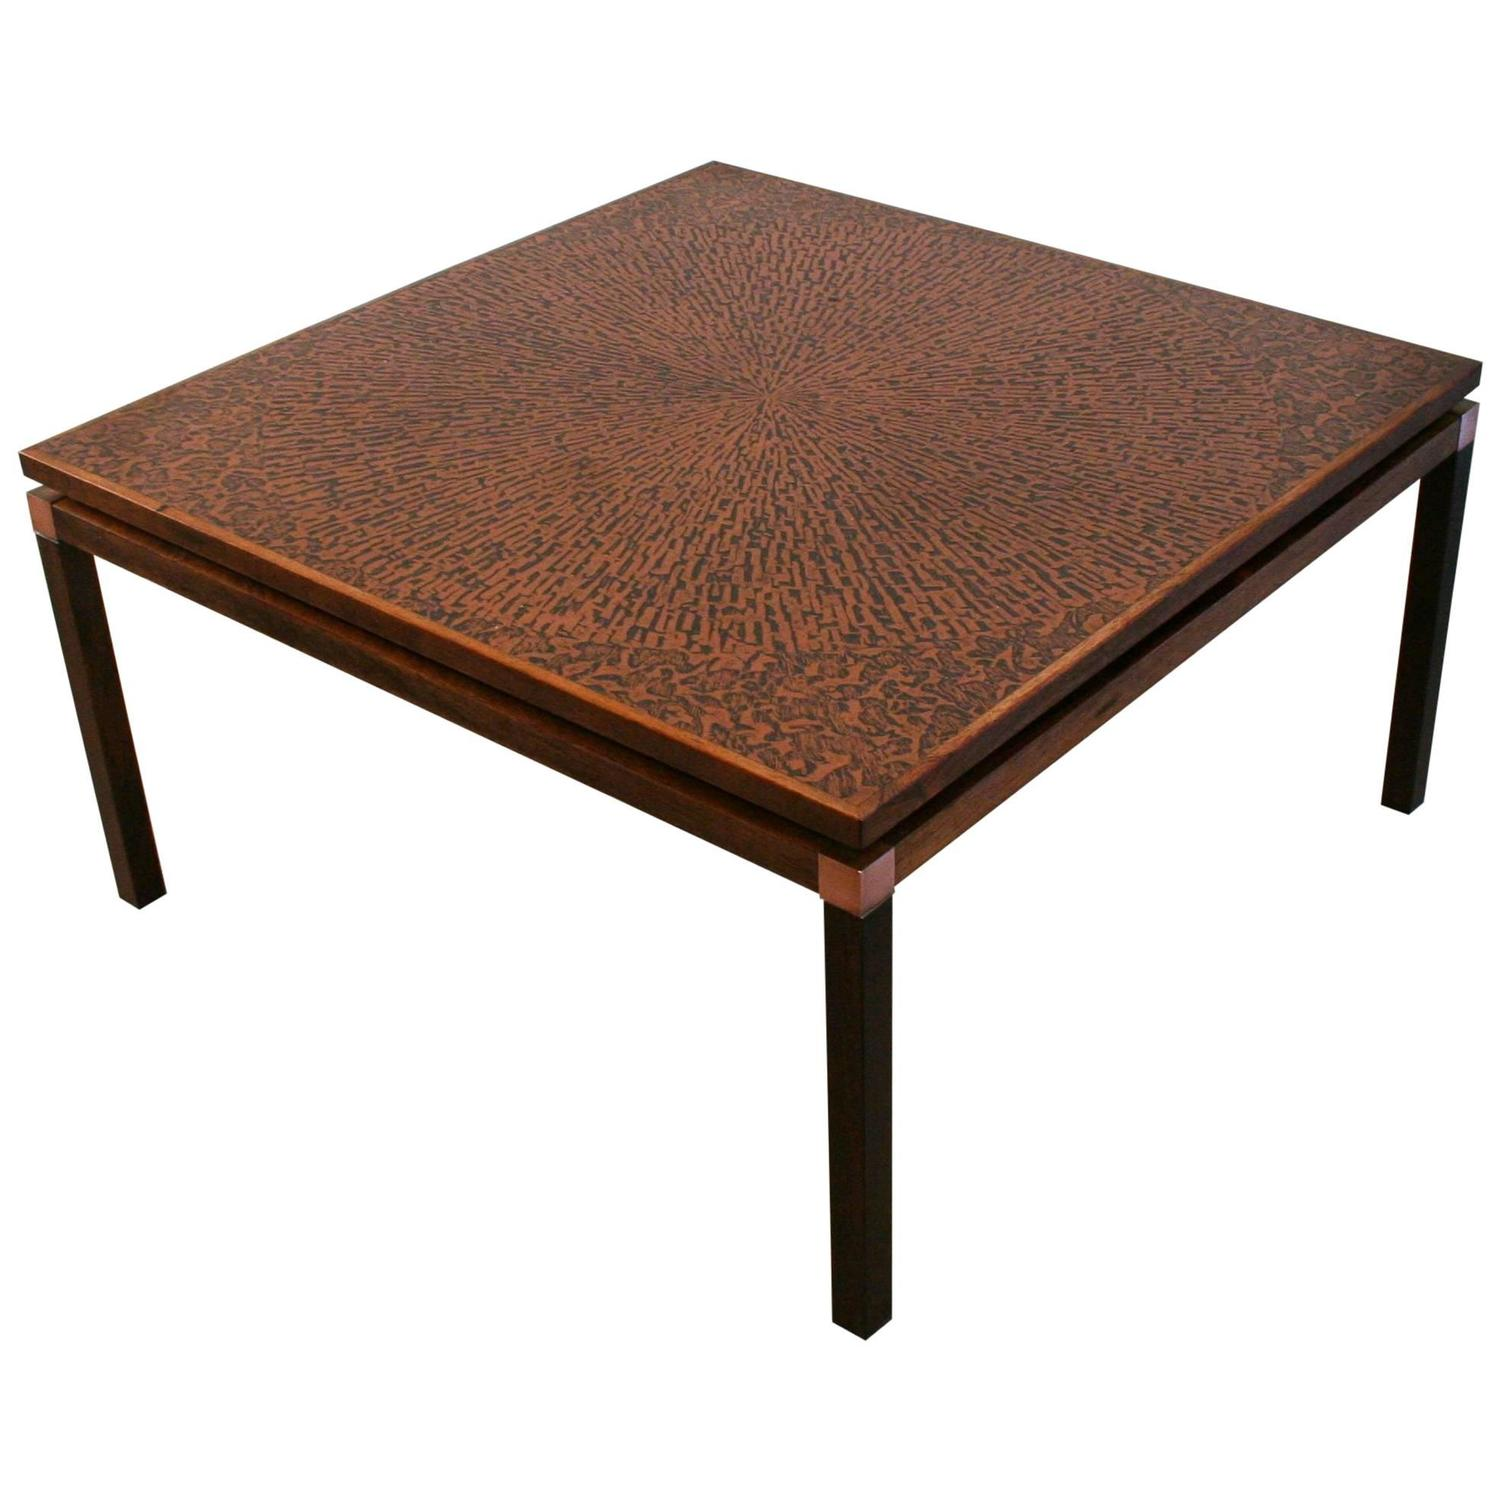 Vintage danish copper and rosewood coffee table at 1stdibs for Coffee tables vancouver canada